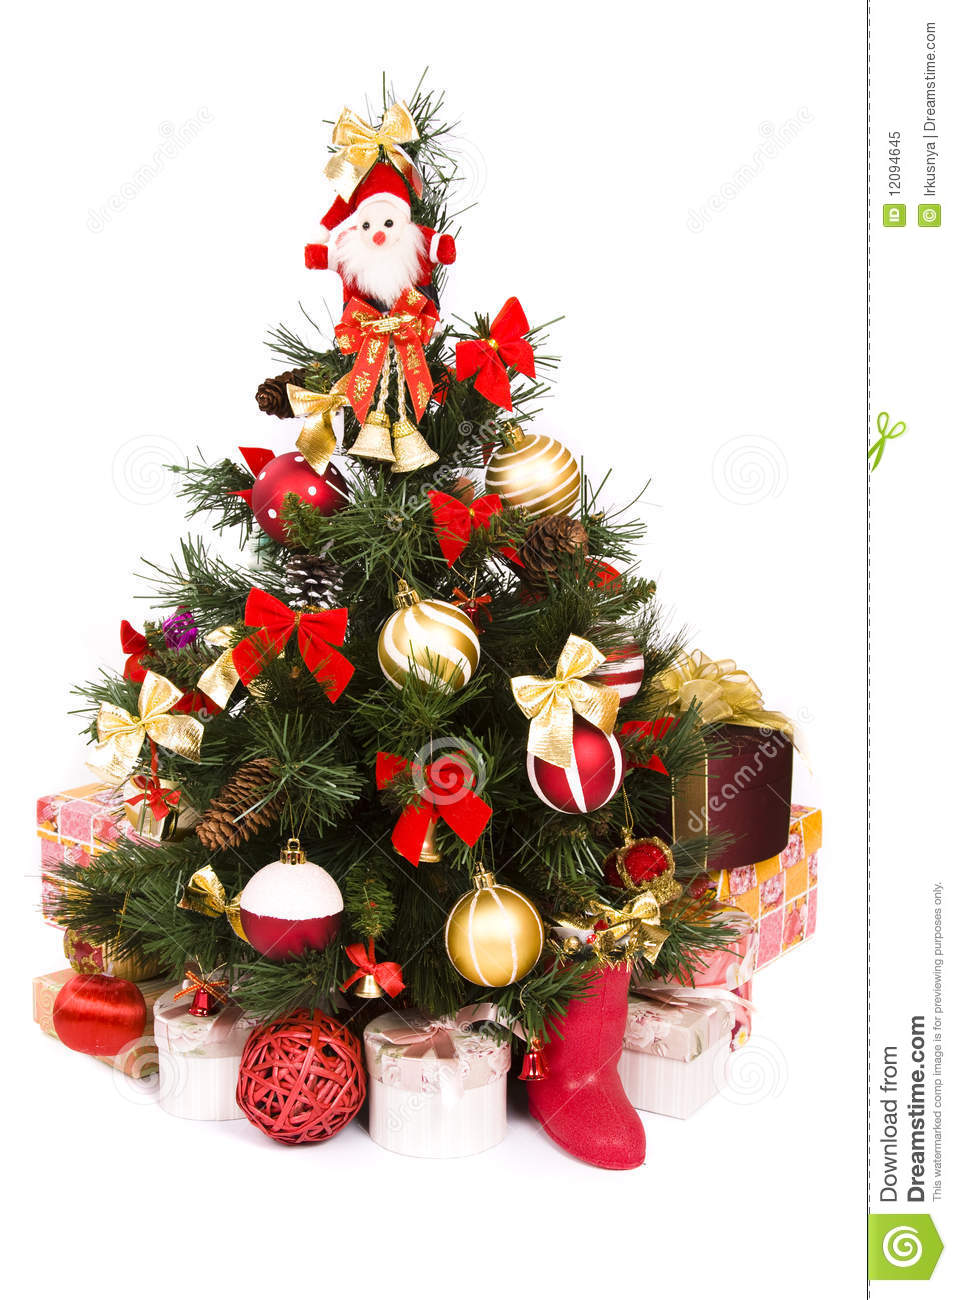 christmas tree decorated in red and gold - Red And Gold Christmas Tree Decorations